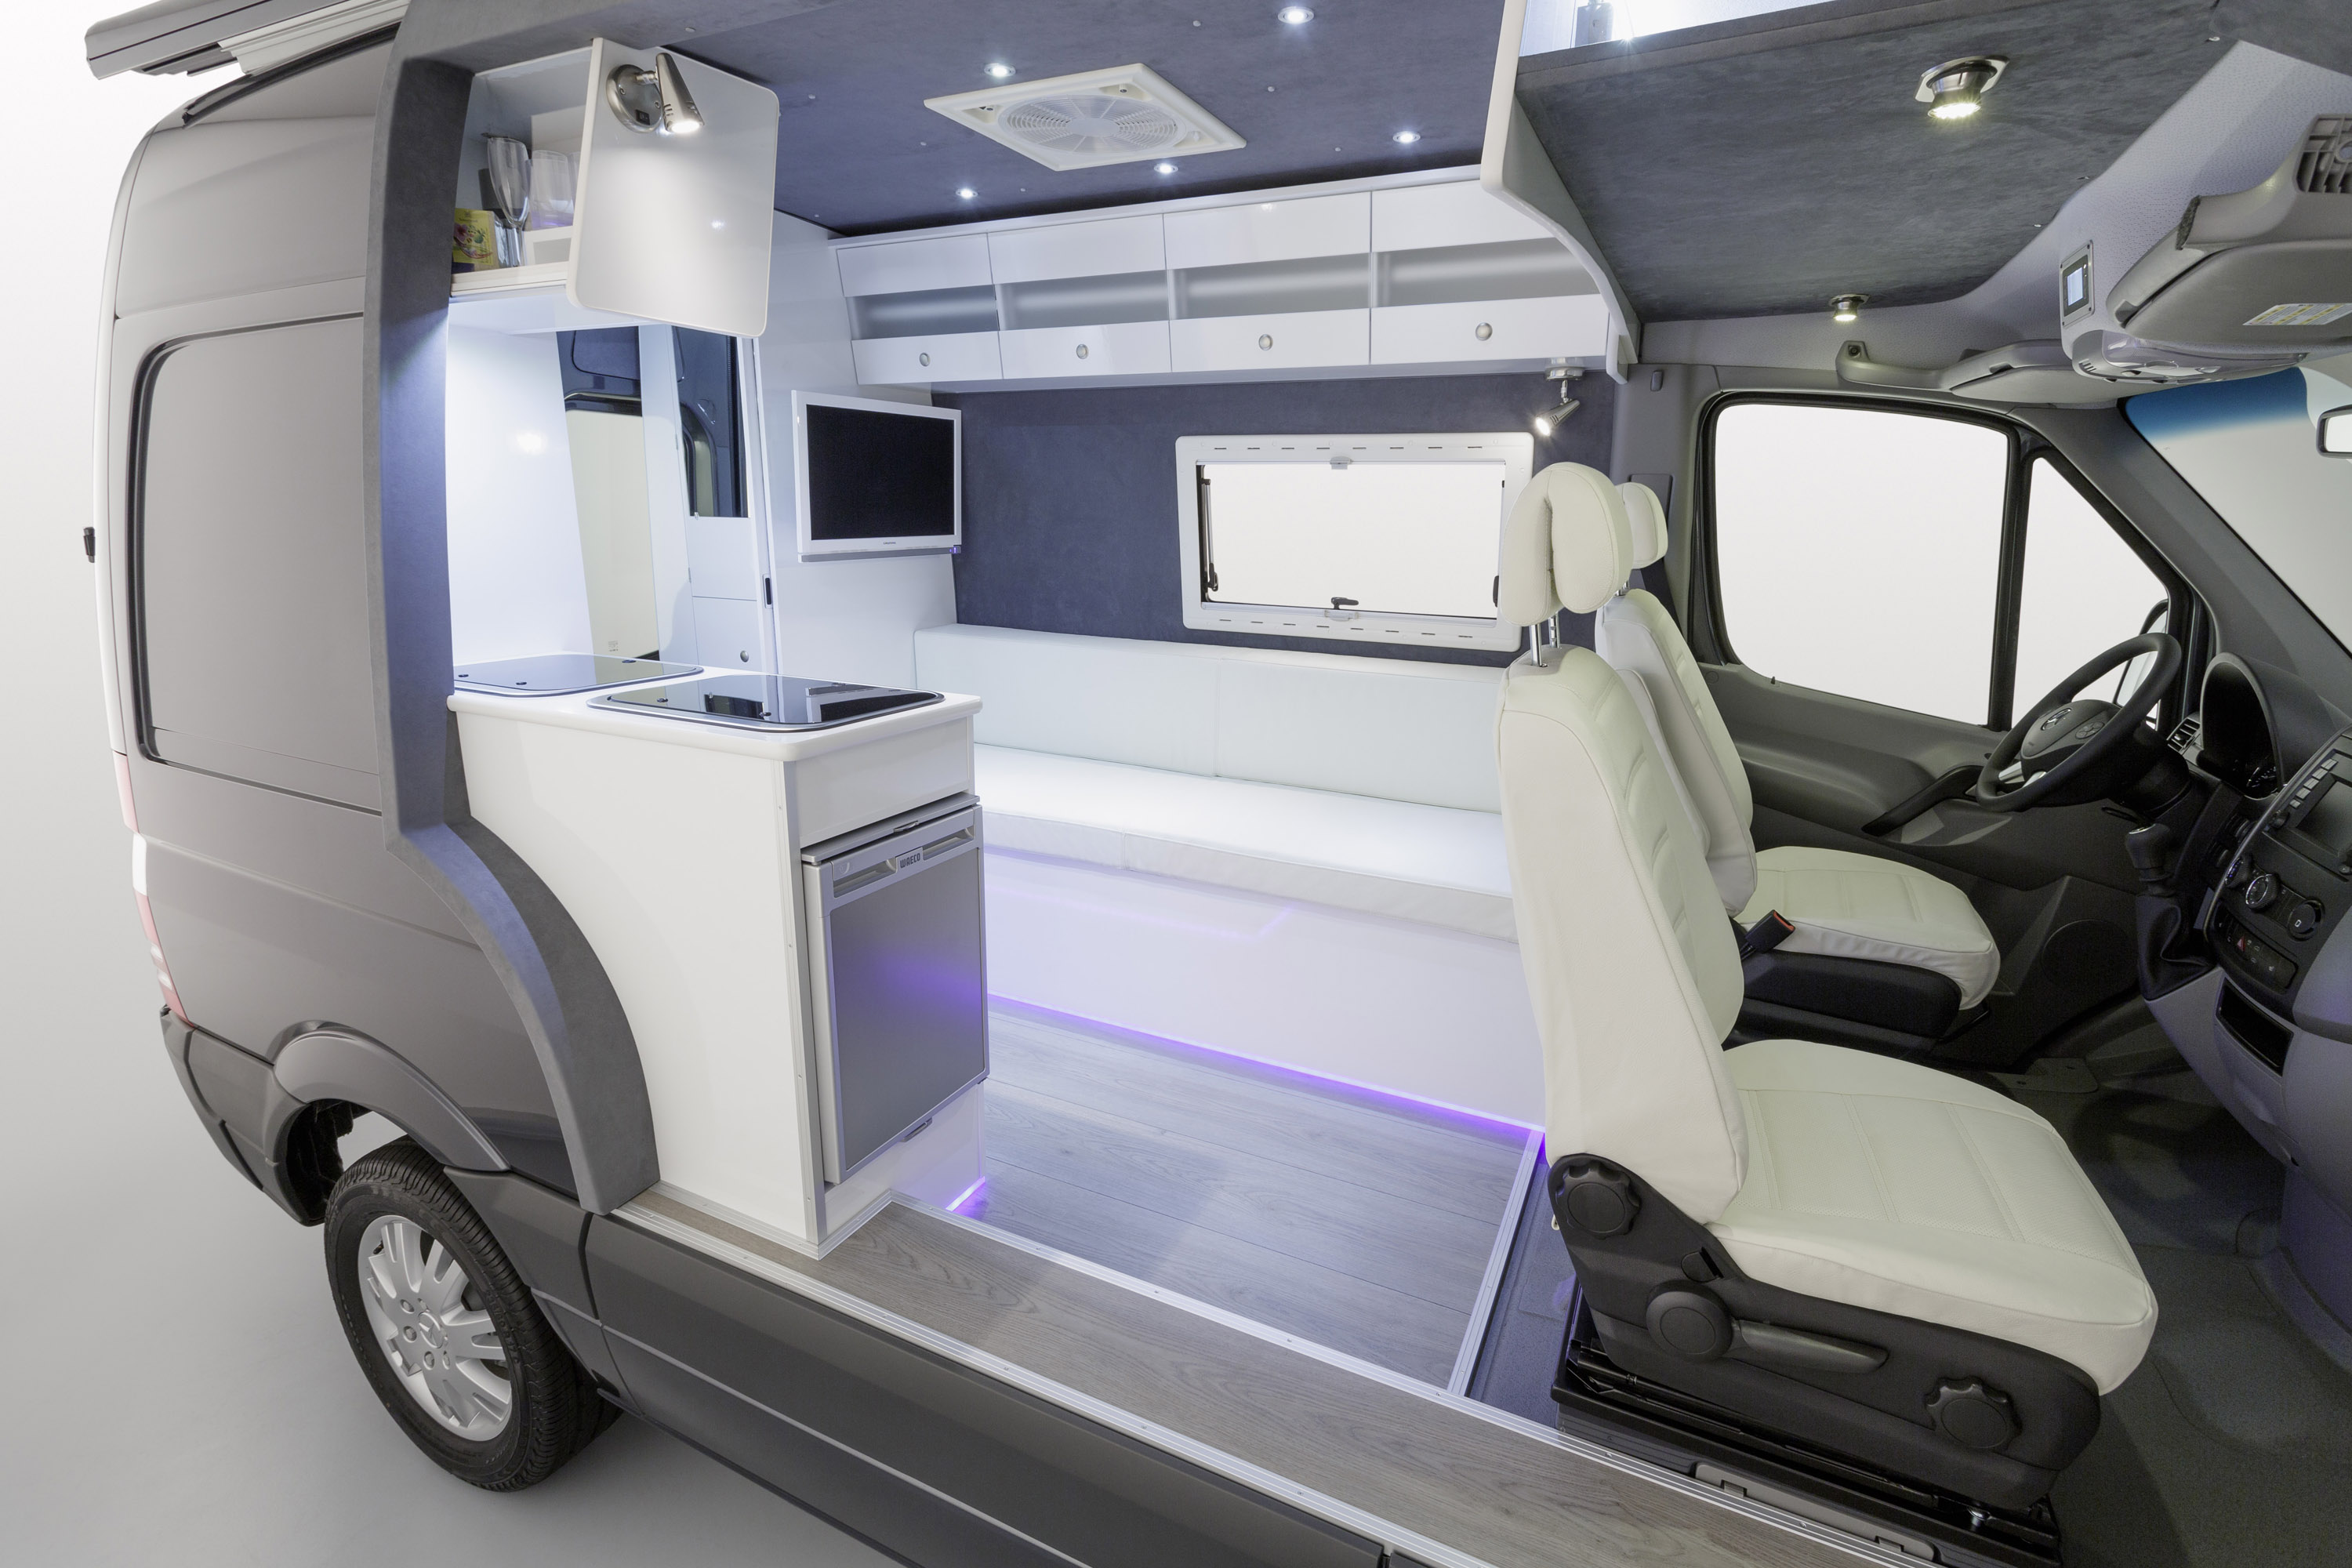 Mercedes Benz Sprinter Caravan Concept Safer Cleaner